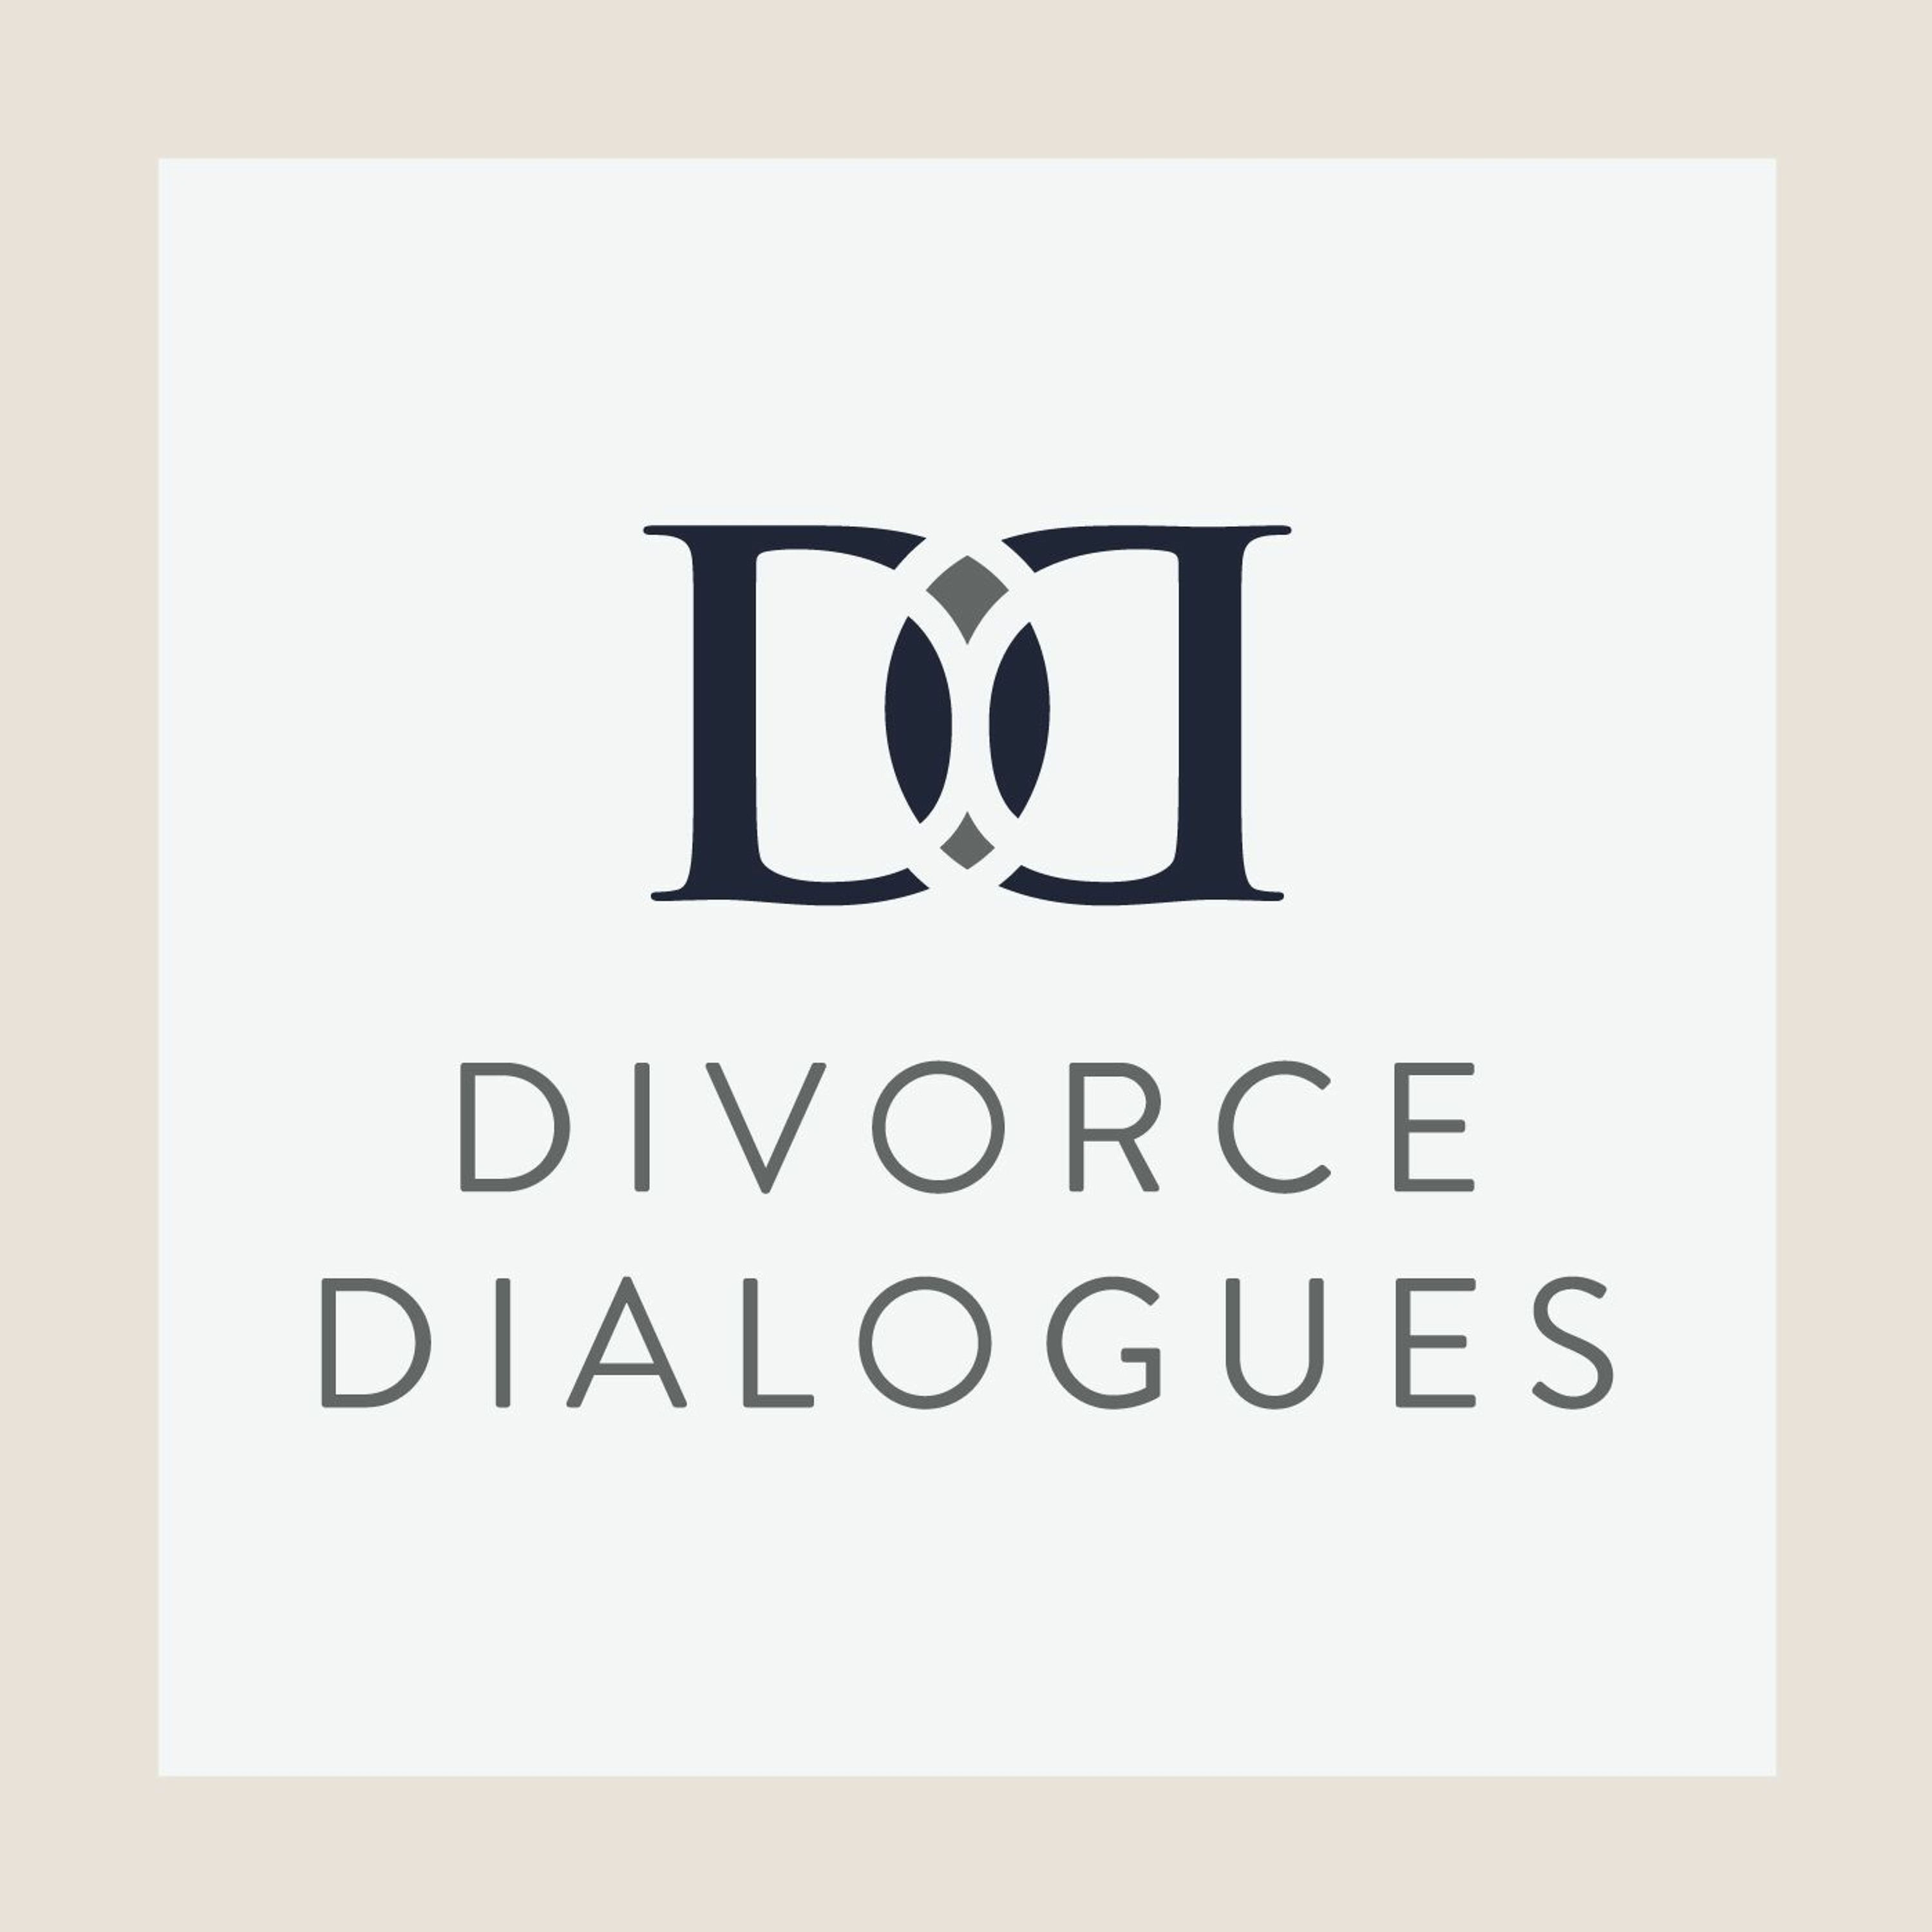 Divorce Dialogues - The Myths of Litigated Divorce & the Benefits of Mediation with Sam Margulies